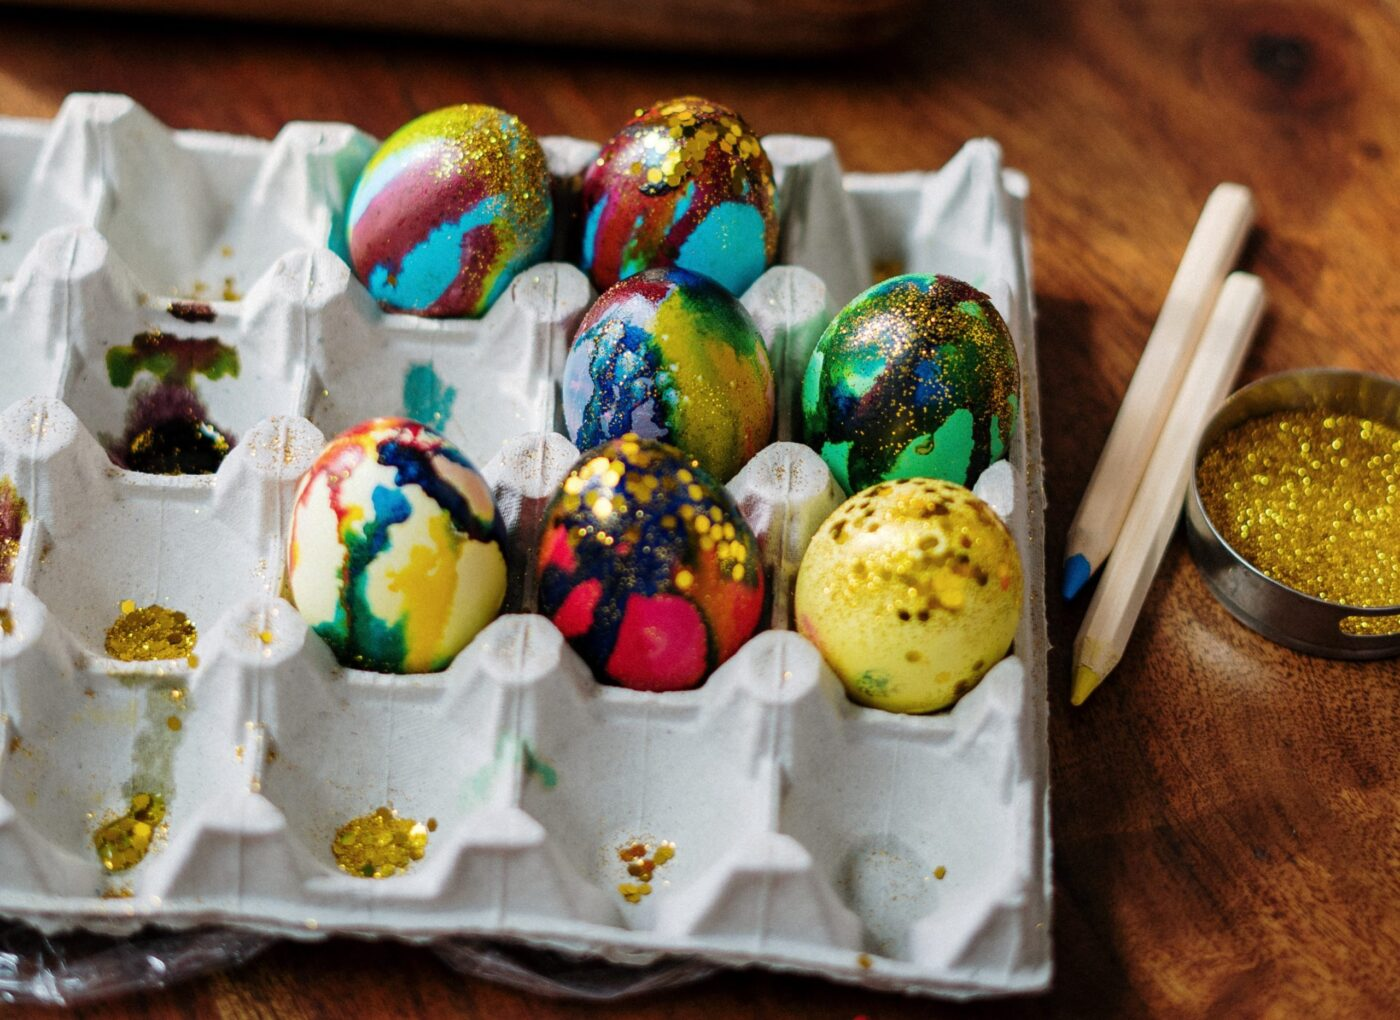 Easter crafternoon: Four fun things to make and do indoors